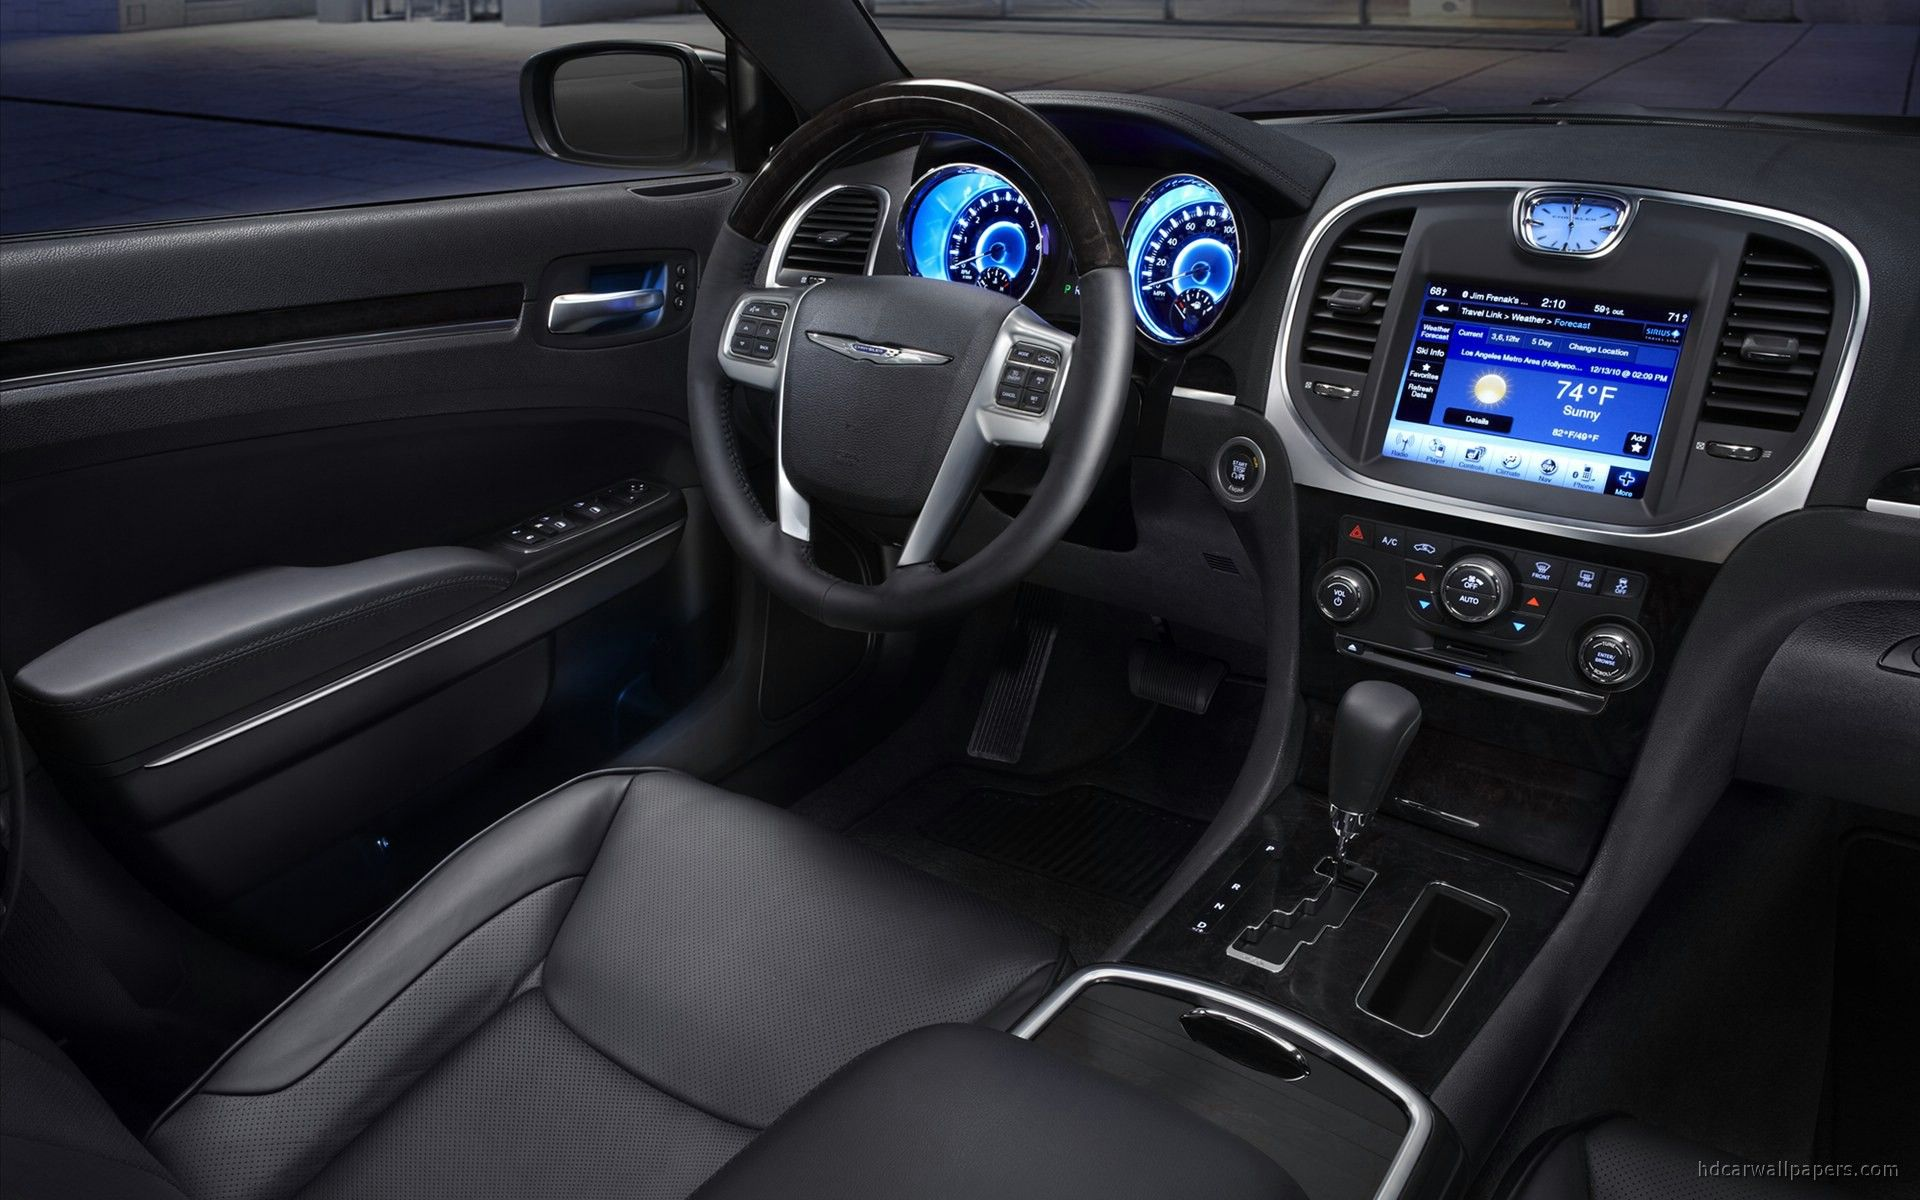 2011 Chrysler 300 Interior Wallpaper | HD Car Wallpapers